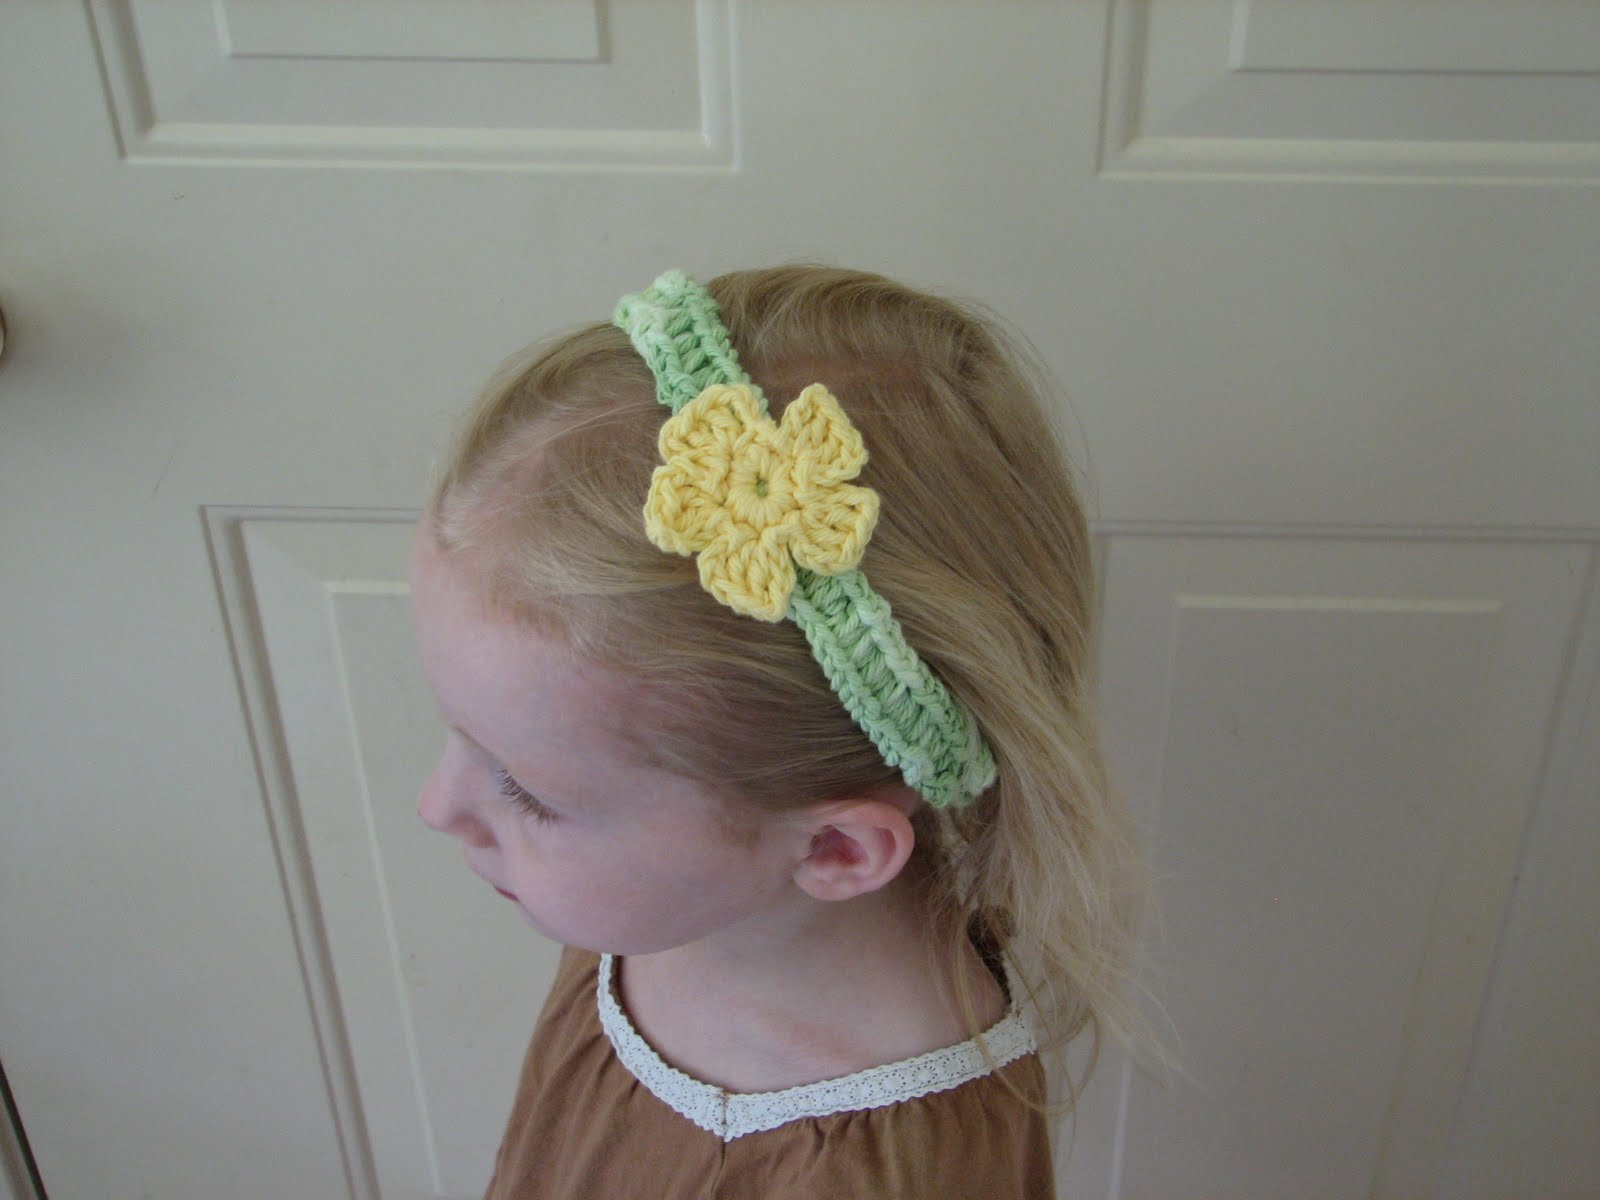 Free Crochet Pattern Flowers Headbands : Flower Headband - Free Crochet Pattern - Ambassador ...